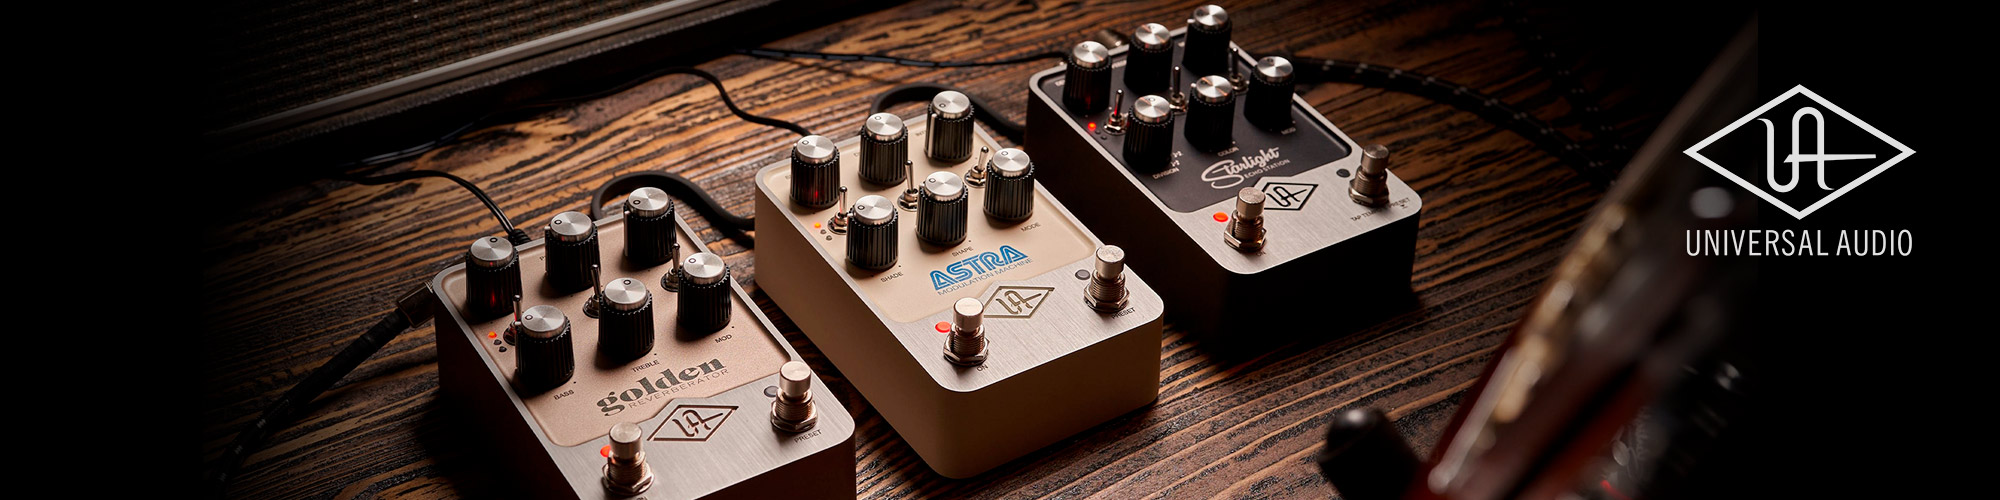 UAFX new pedals